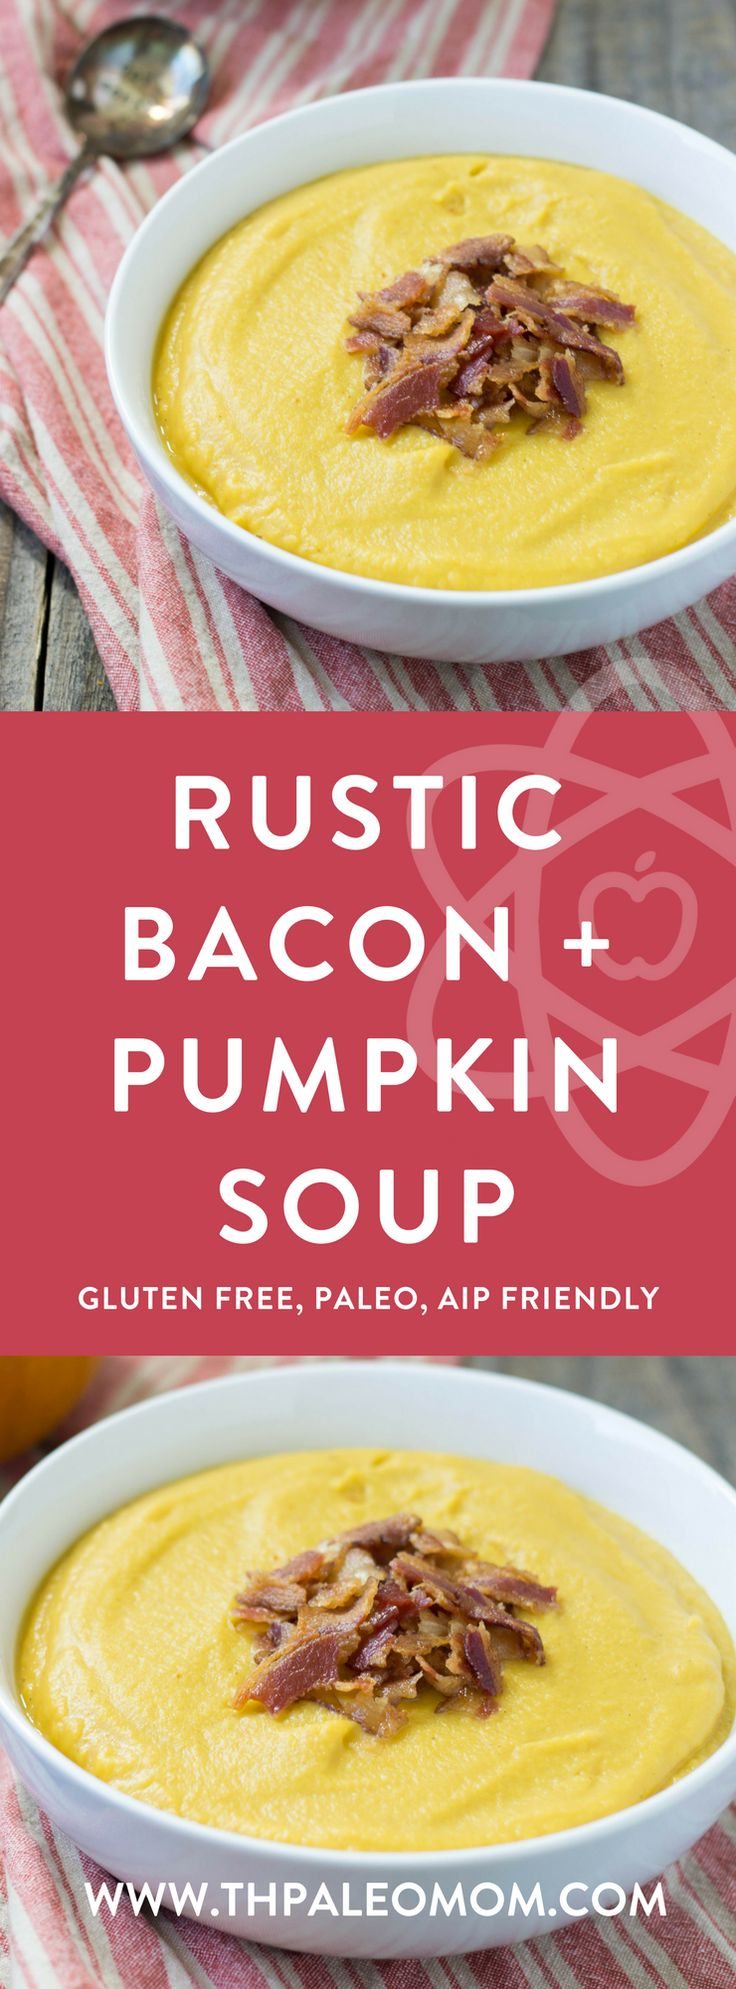 Rustic Bacon and Pumpkin Soup   The Paleo Mom